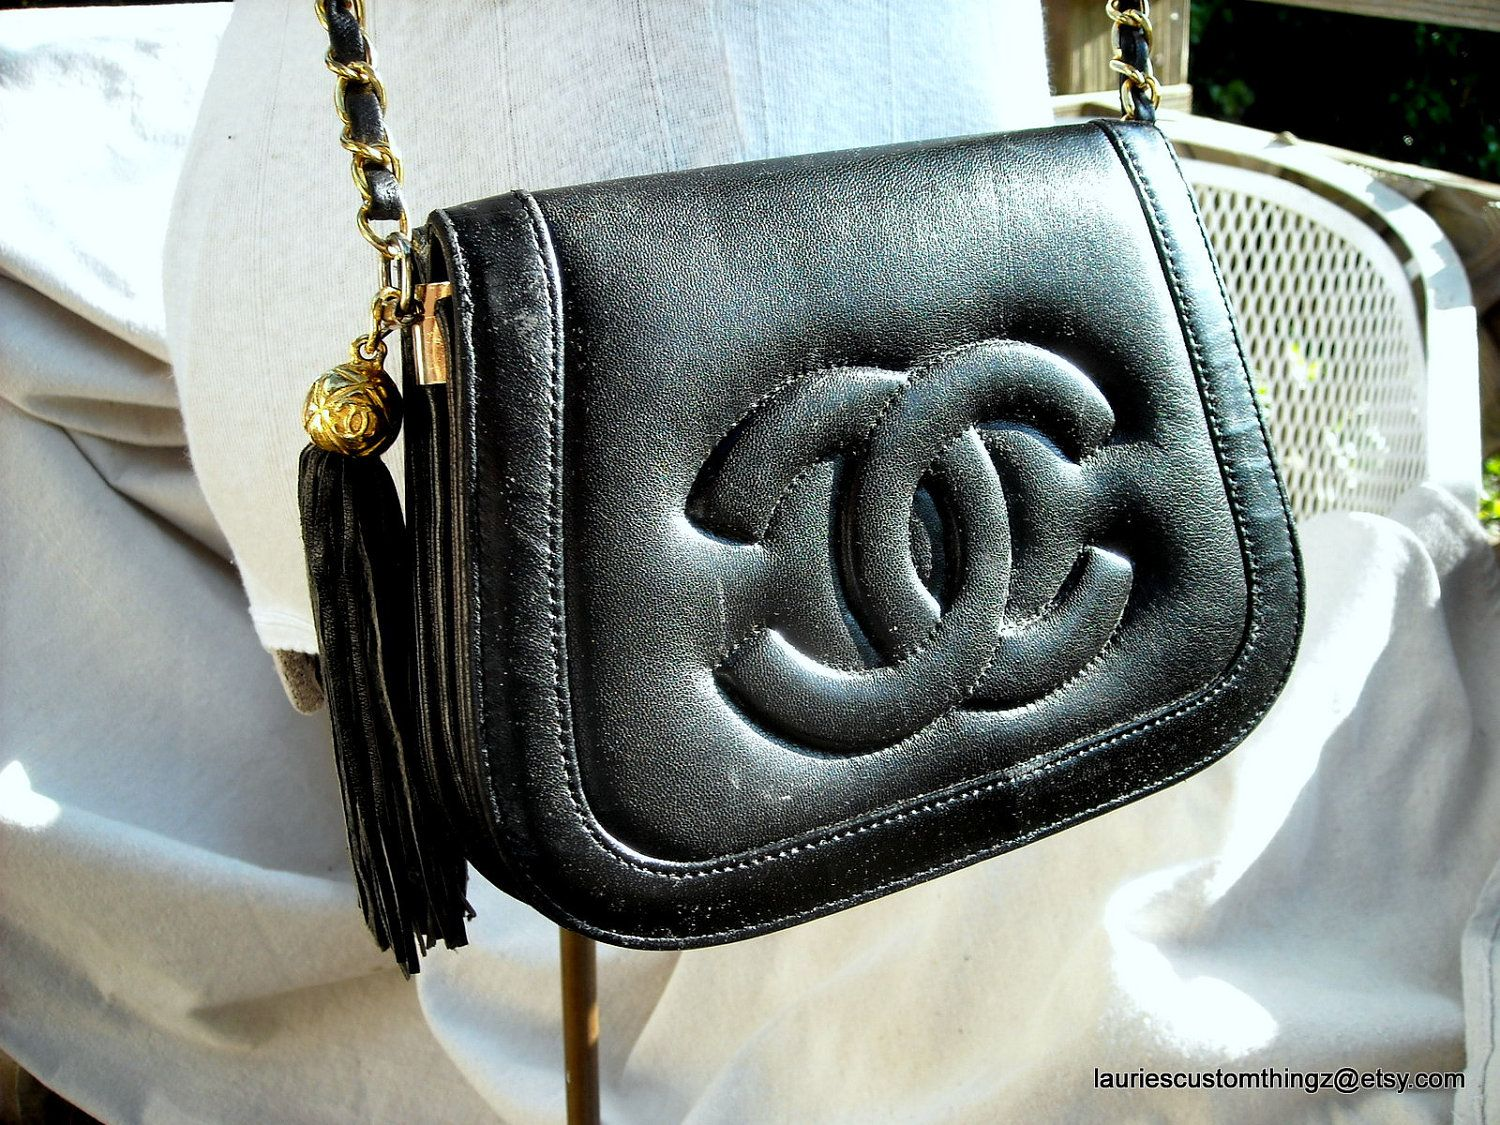 aea658a19494 Vintage Chanel flap bag with tassel.  chanel  vintage  timeless  flapbag  cc